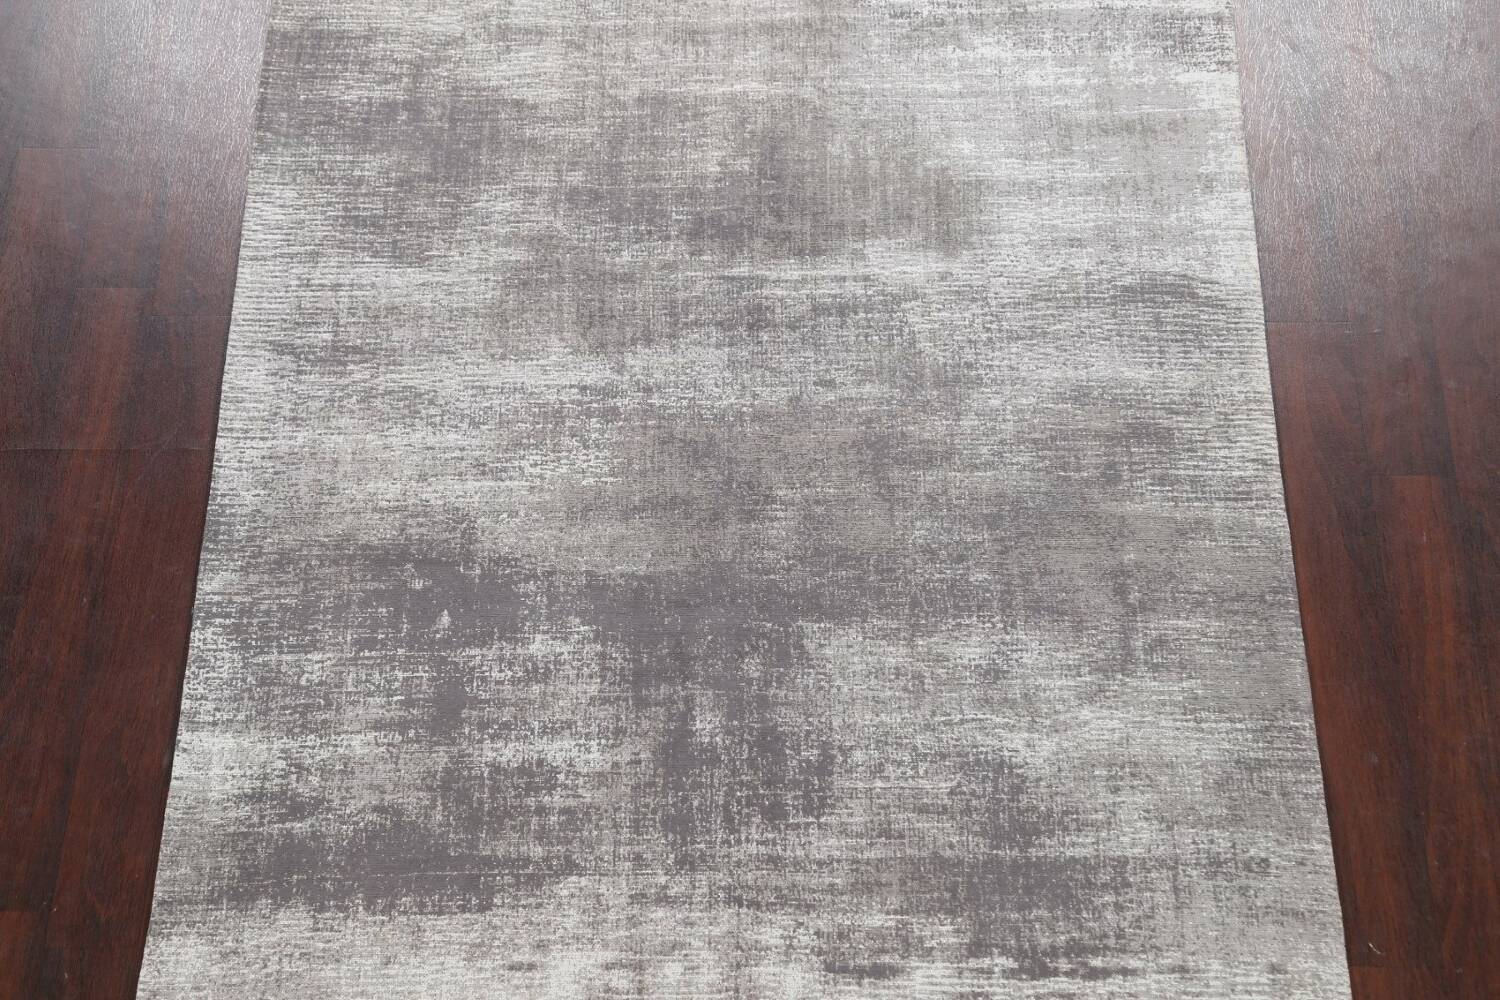 Abstract Modern Oriental Area Rug 5x8 image 3